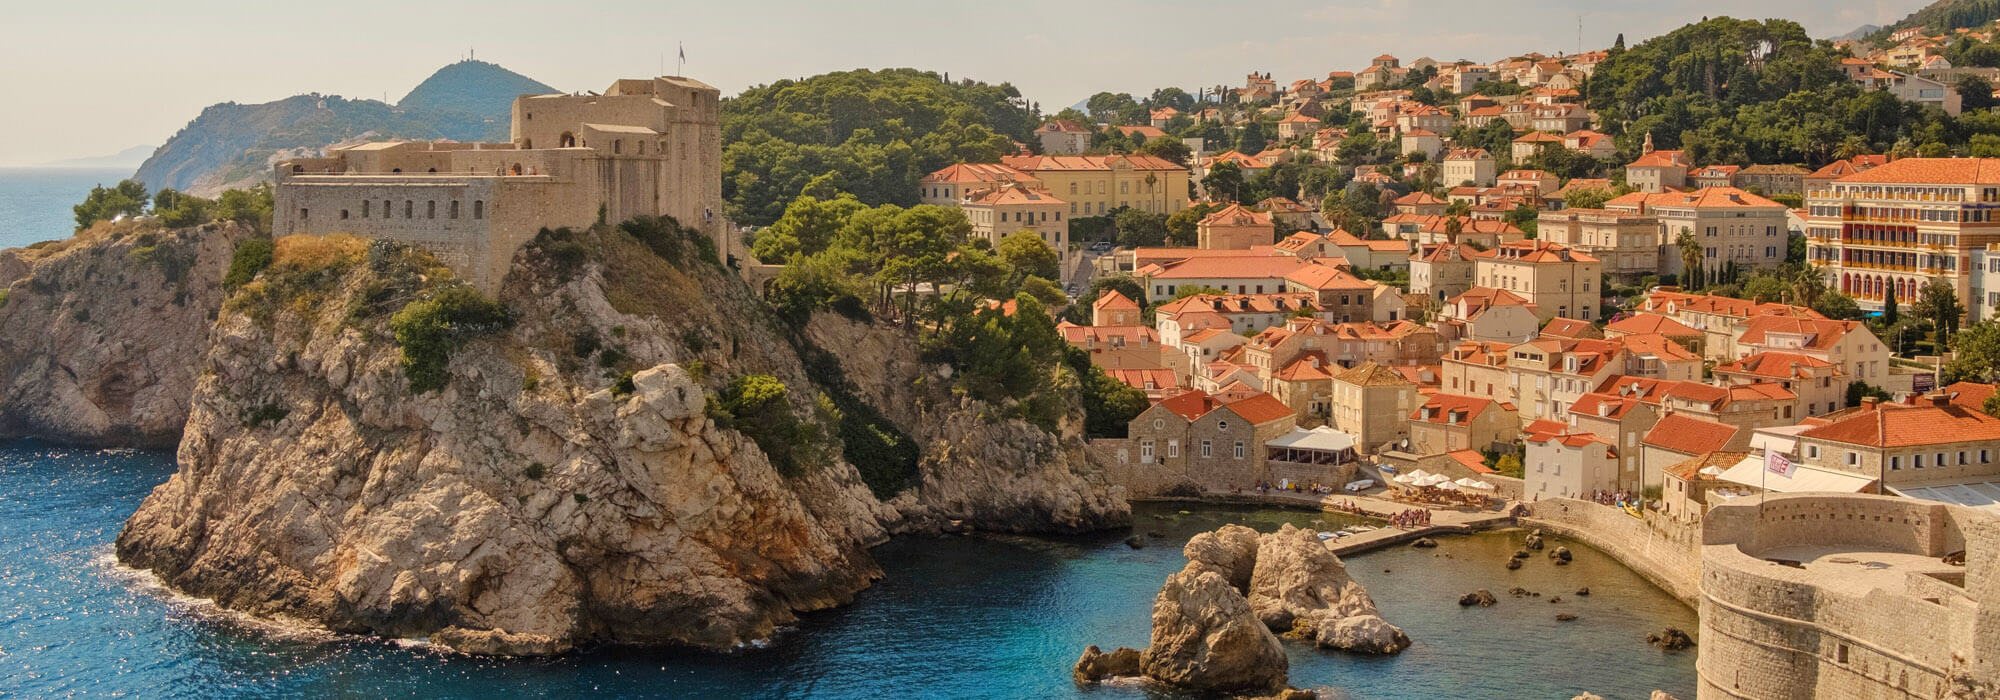 sailing-and-yacht-charter-dubrovnik-in-croatia_14